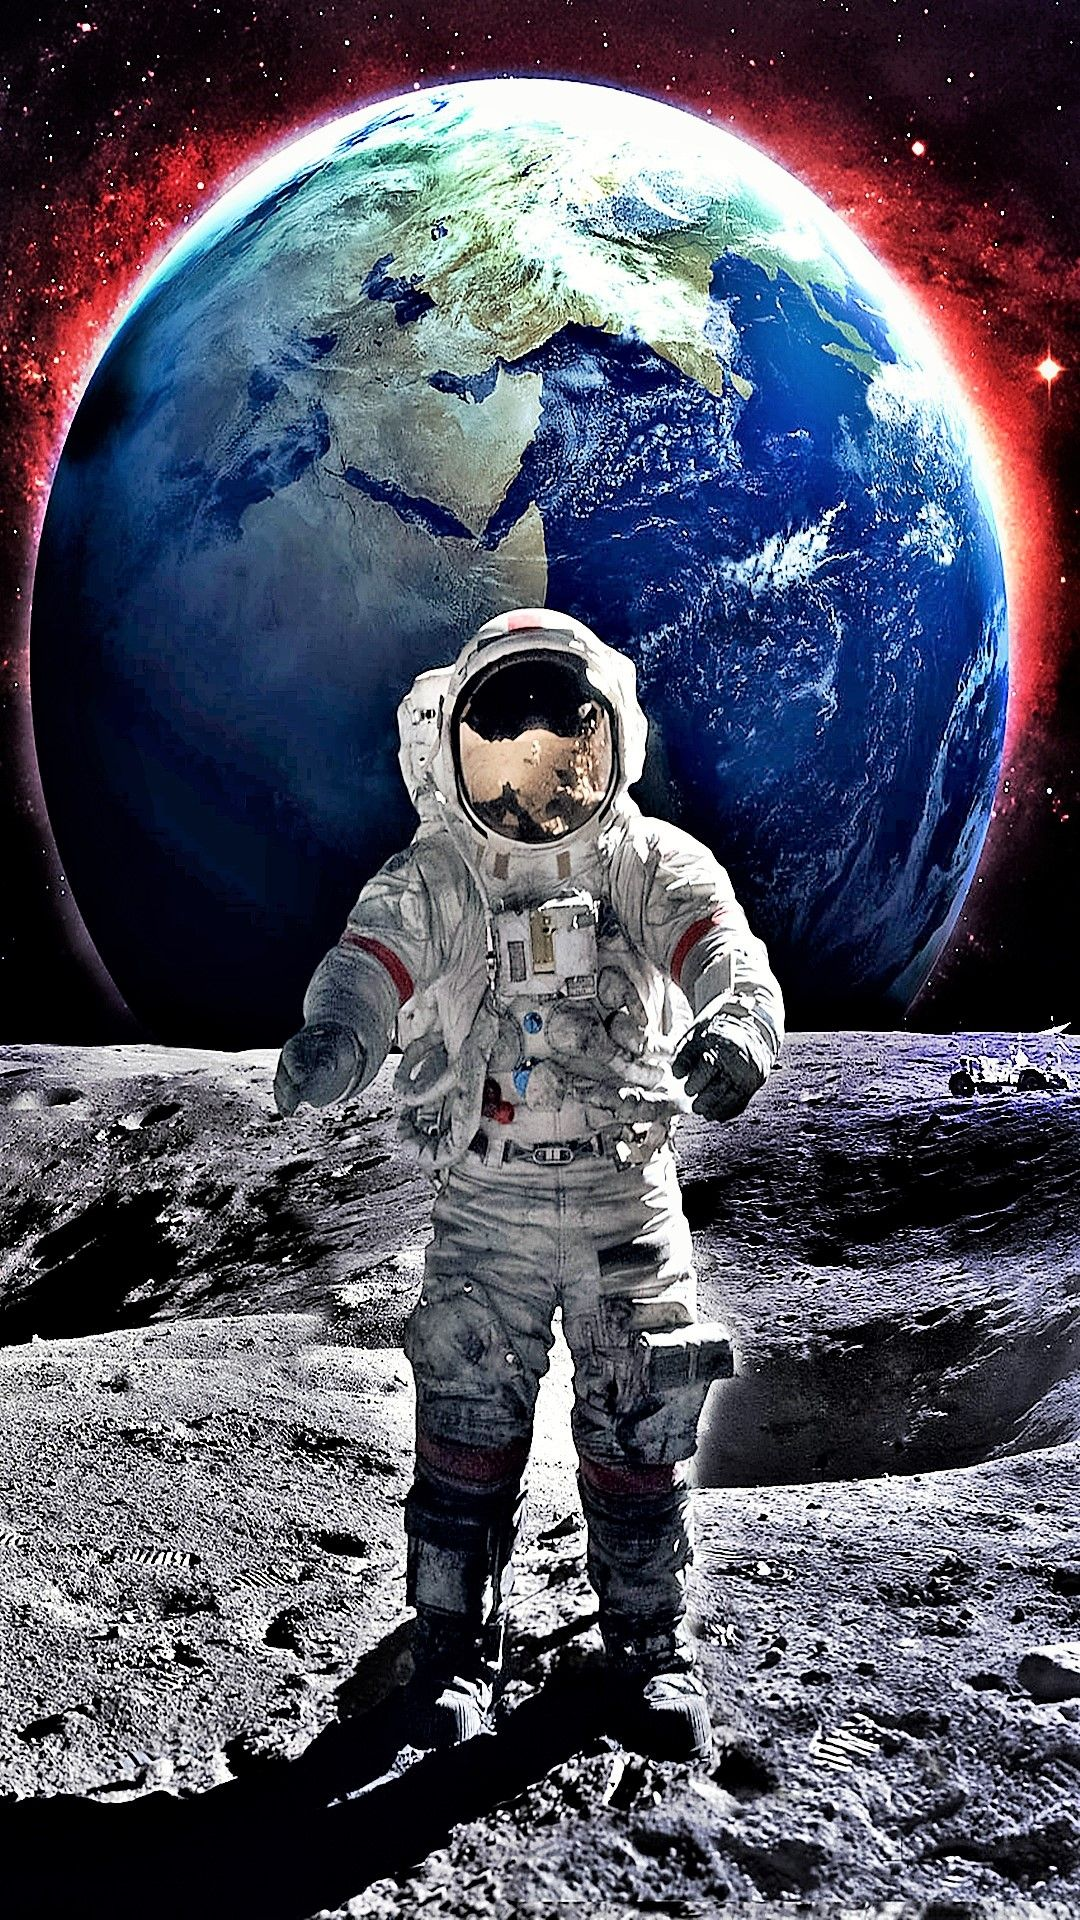 Moon Earth Astronaut Tap To See More Beautiful Galactical Space